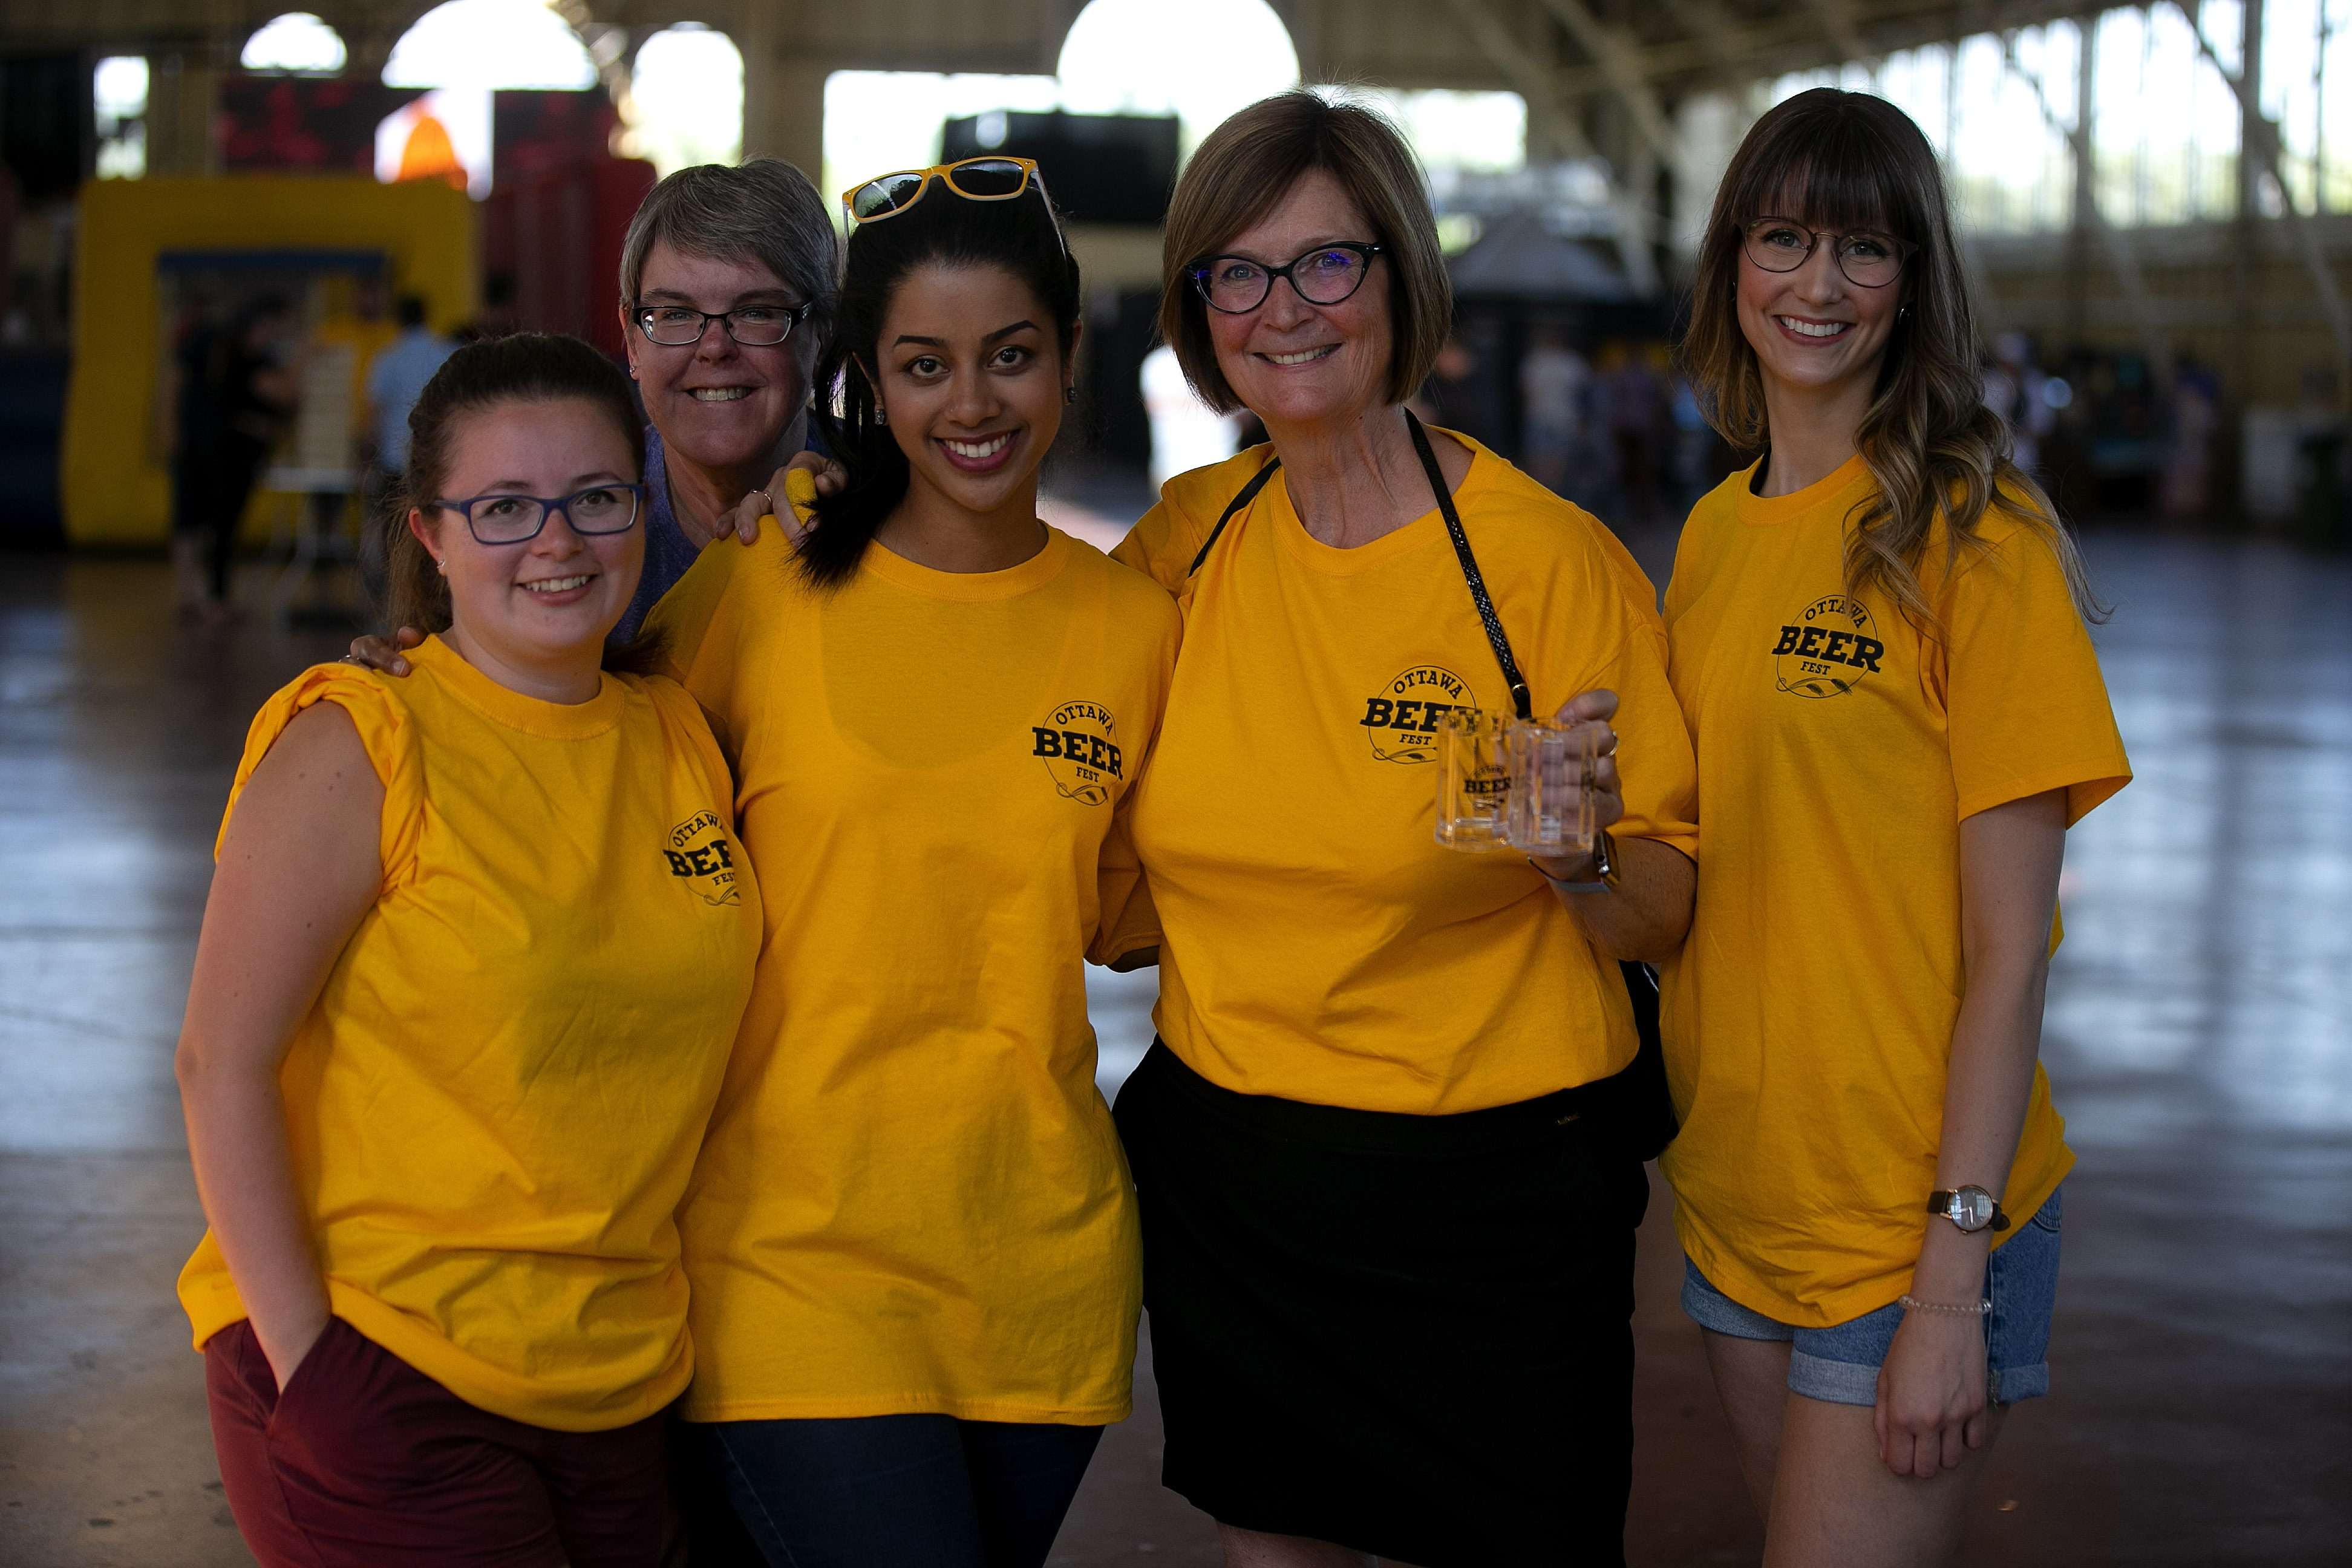 Ottawa Beer Festival - Volunteers